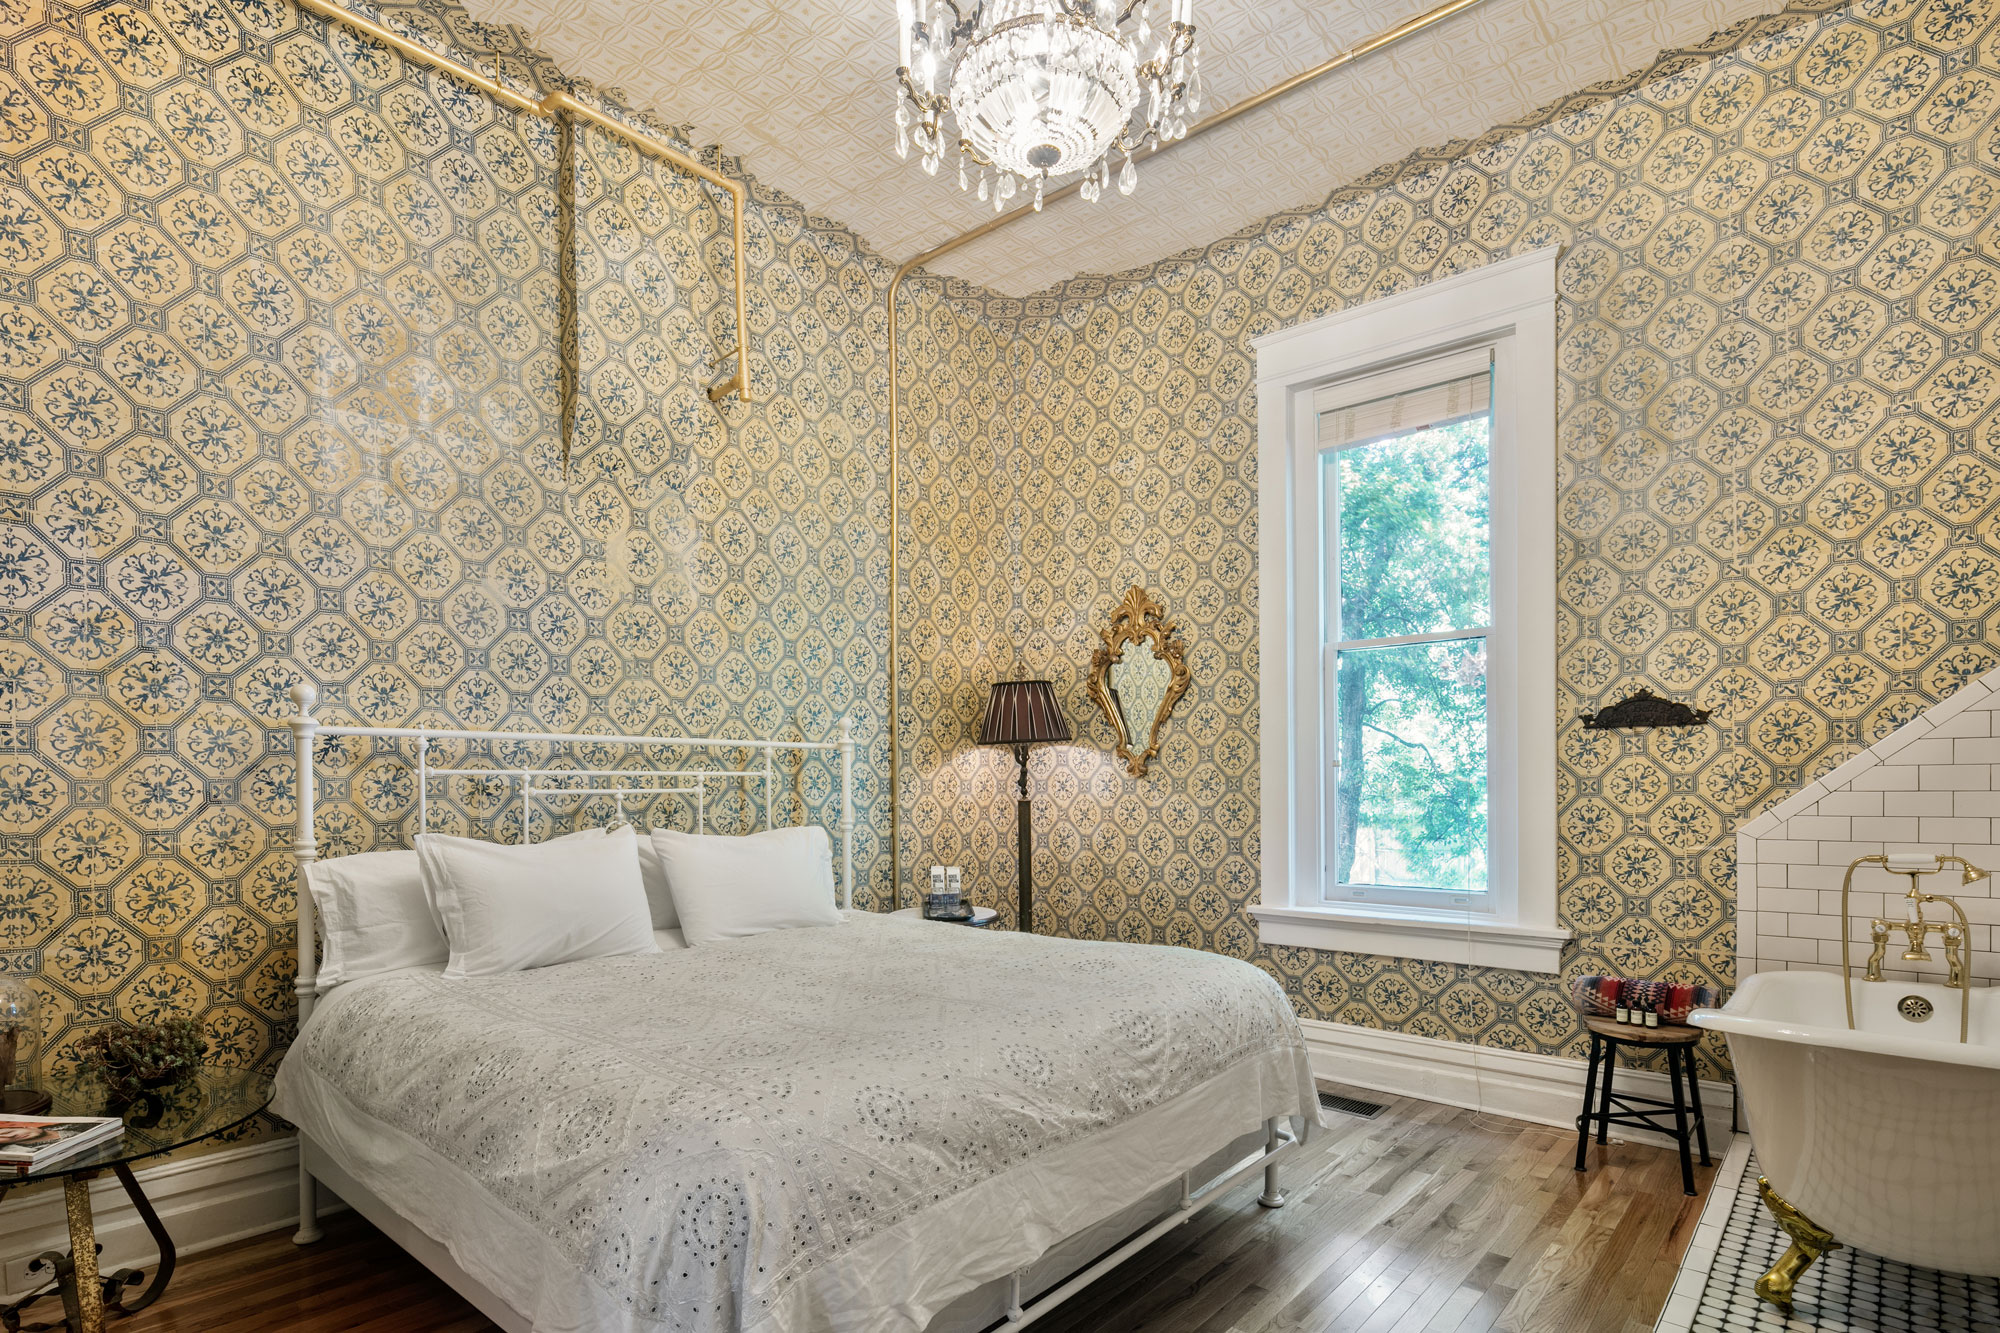 The Victorian Room inside Urban Cowboy Nashville. A king sized bed is placed in the middle, just across from a tiled area holding a claw foot bathtub. The walls are tiled with detail and a chandelier lamp gives a warm light